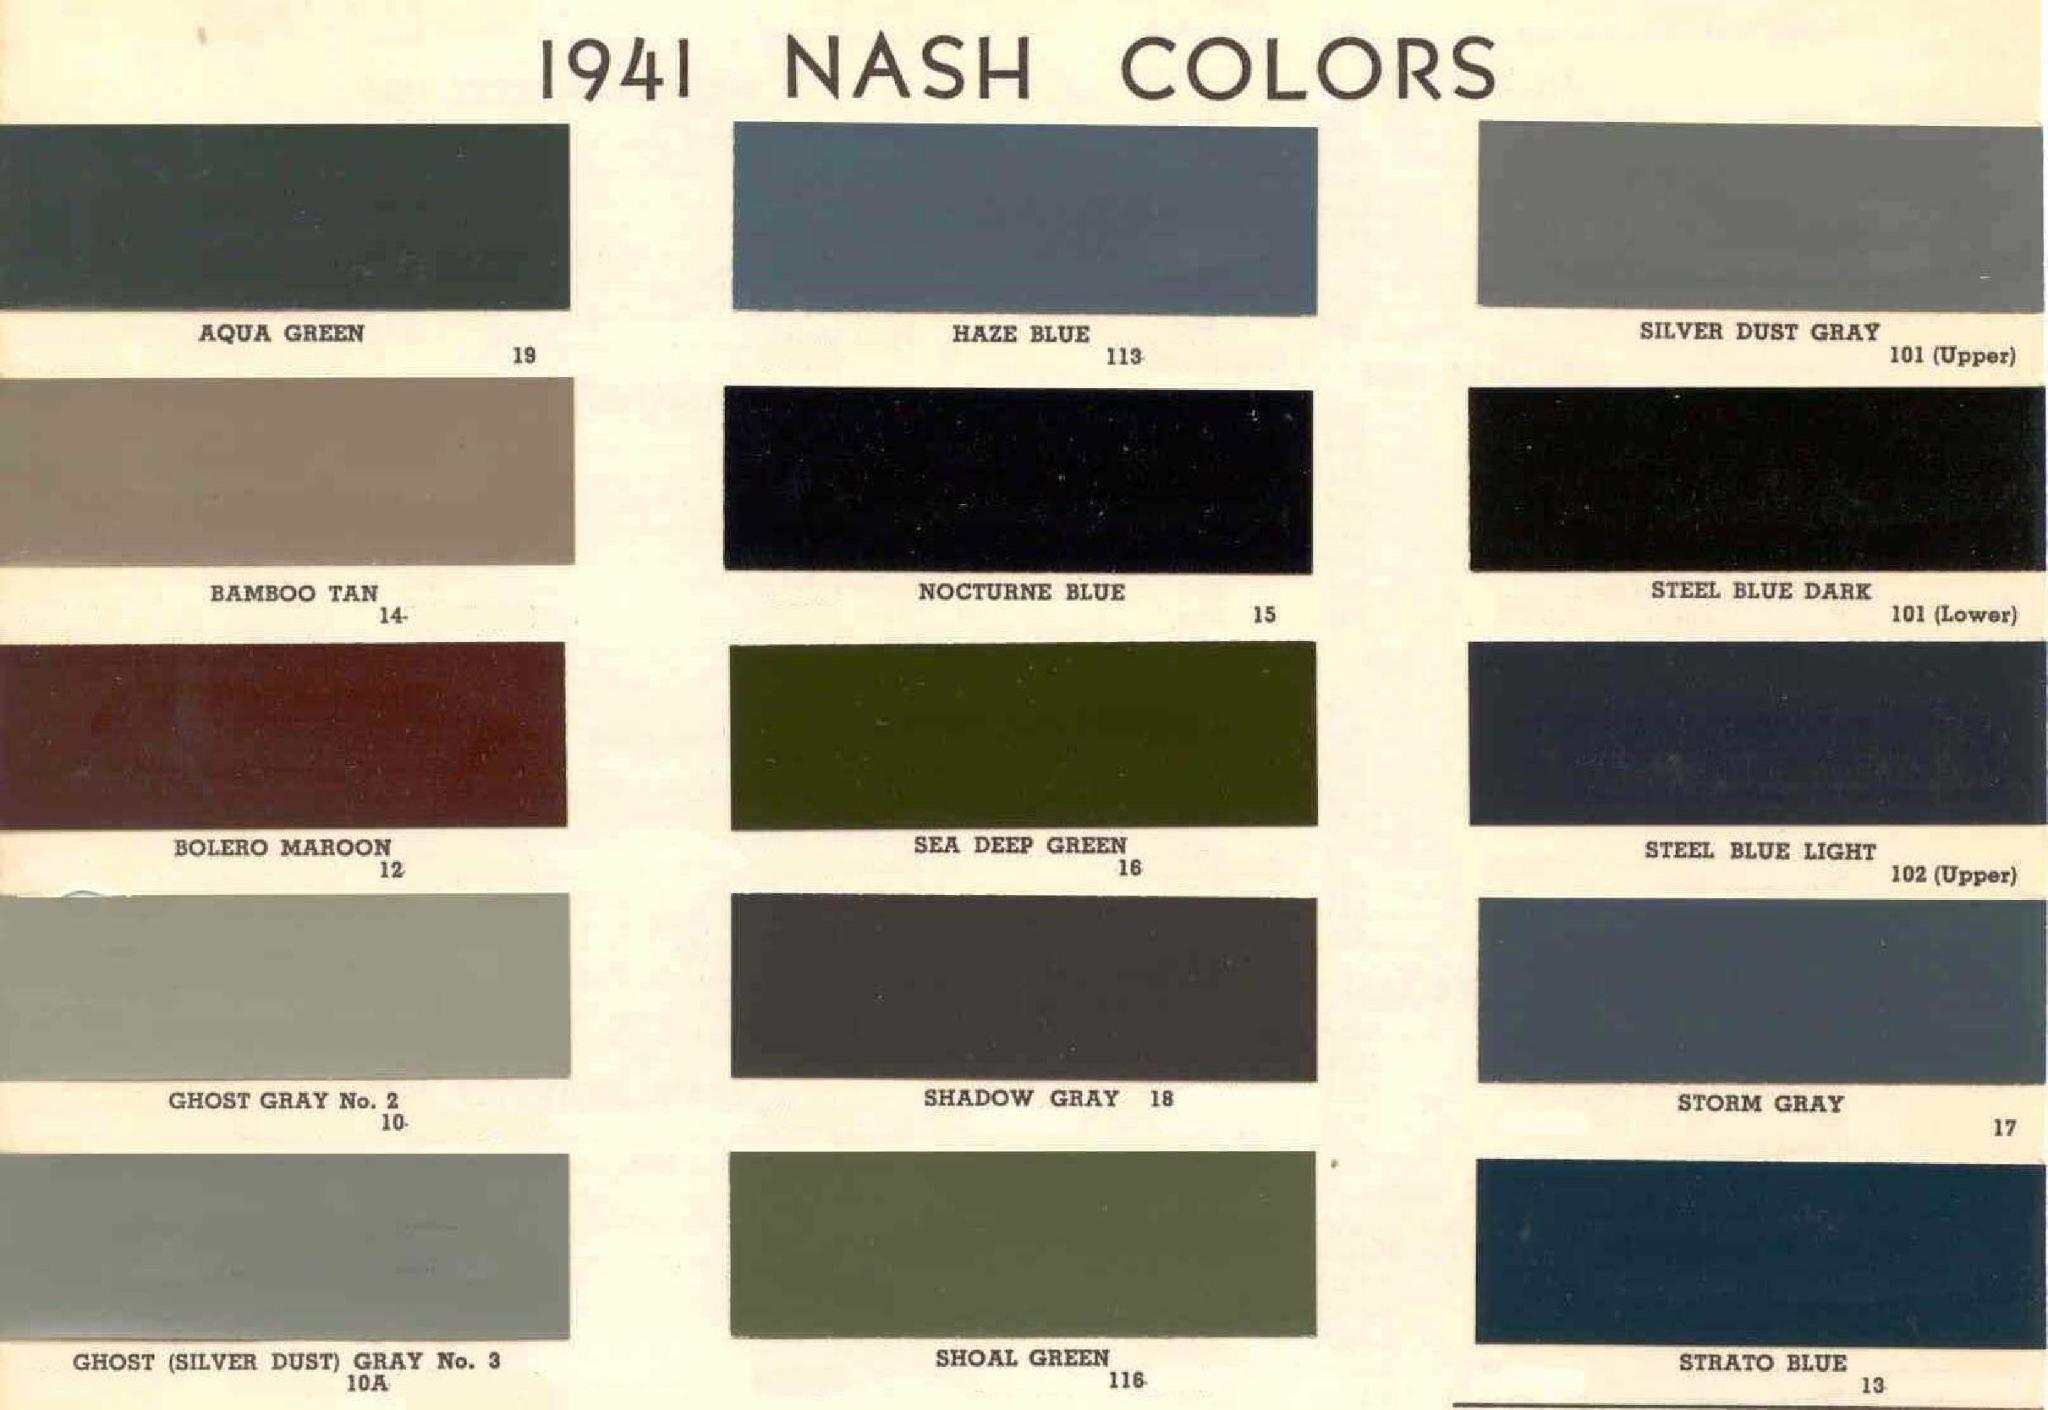 Colors and Codes used on Exterior Vehicles